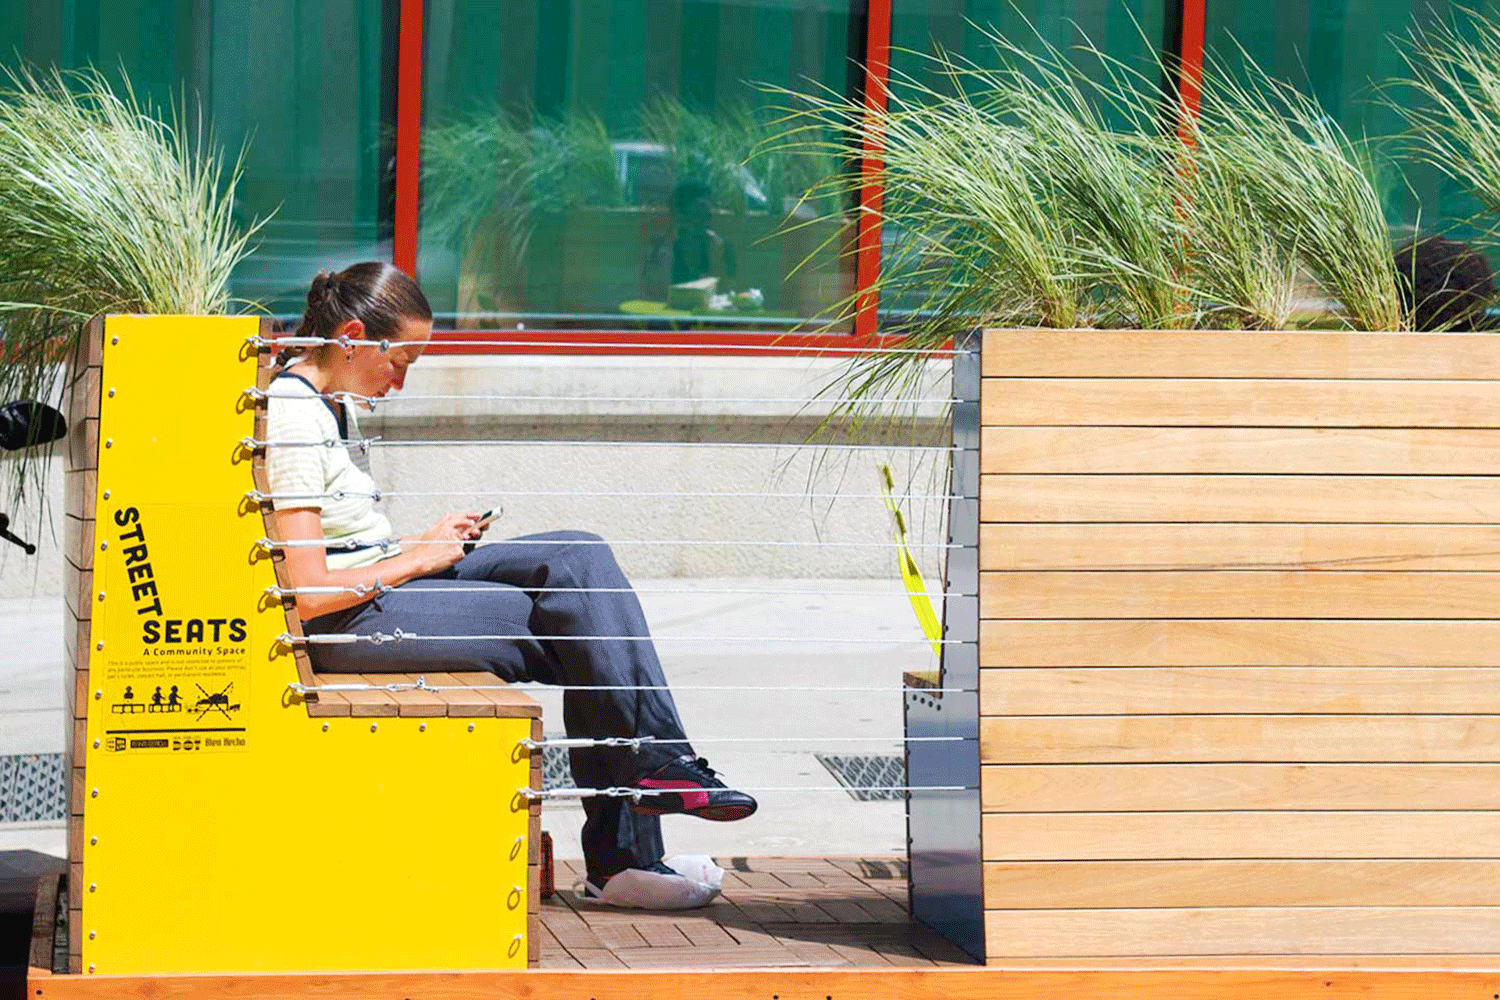 placemaking-street-seats-downtown-brooklyn